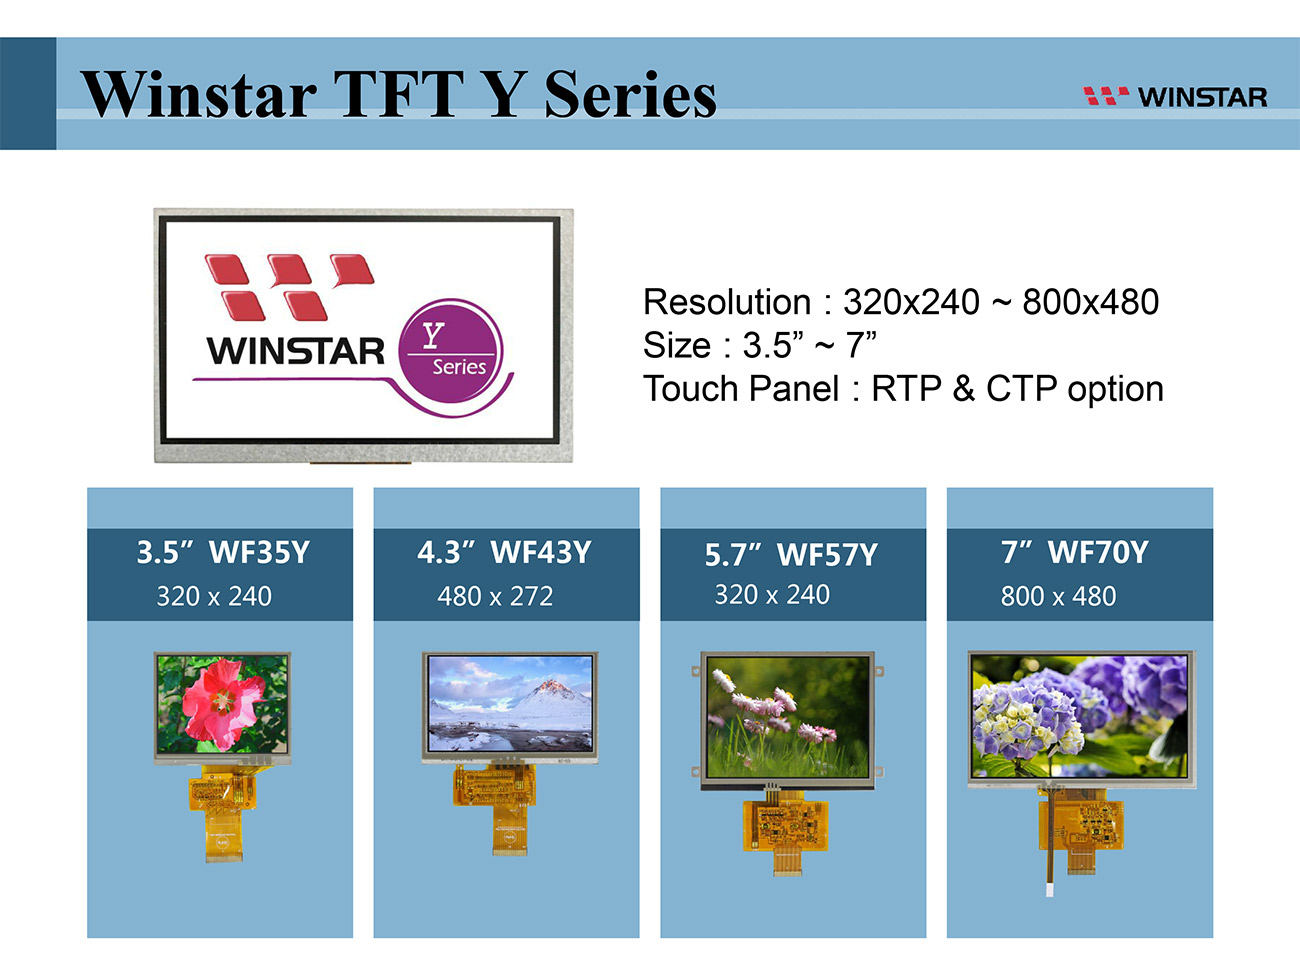 "Winstar TFT LCD Y Series - 3.5 tft lcd, 3.5"" tft lcd, tft lcd 3.5, tft lcd 3.5"", 3.5 tft display, tft display 3.5, 4.3 tft lcd, 4.3 tft lcd, 4.3"" tft lcd, tft lcd 4.3, tft lcd 4.3"", 4.3 tft display, tft display 4.3, 5.7 tft lcd, 5.7"" tft lcd, tft lcd 5.7, tft lcd 5.7"", 5.7 tft display, tft display 5.7, 7 tft lcd, 7"" tft lcd, tft lcd 7, tft lcd 7"", 7 tft display, tft display 7, 7.0 tft lcd, 7.0 tft display"